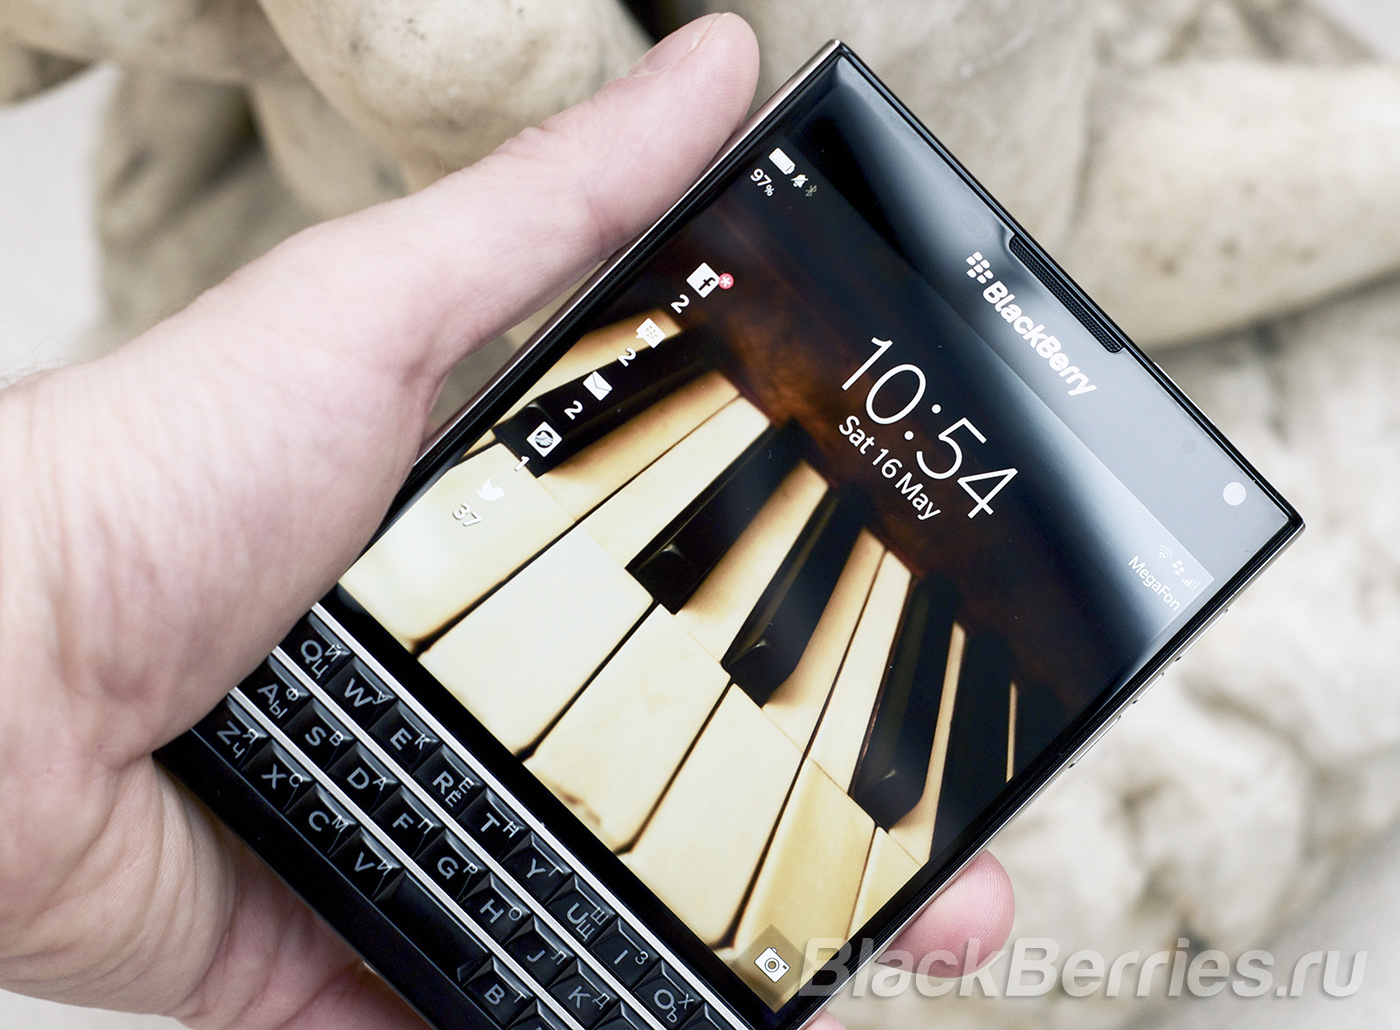 BlackBerry-Passport-Apps-2-14